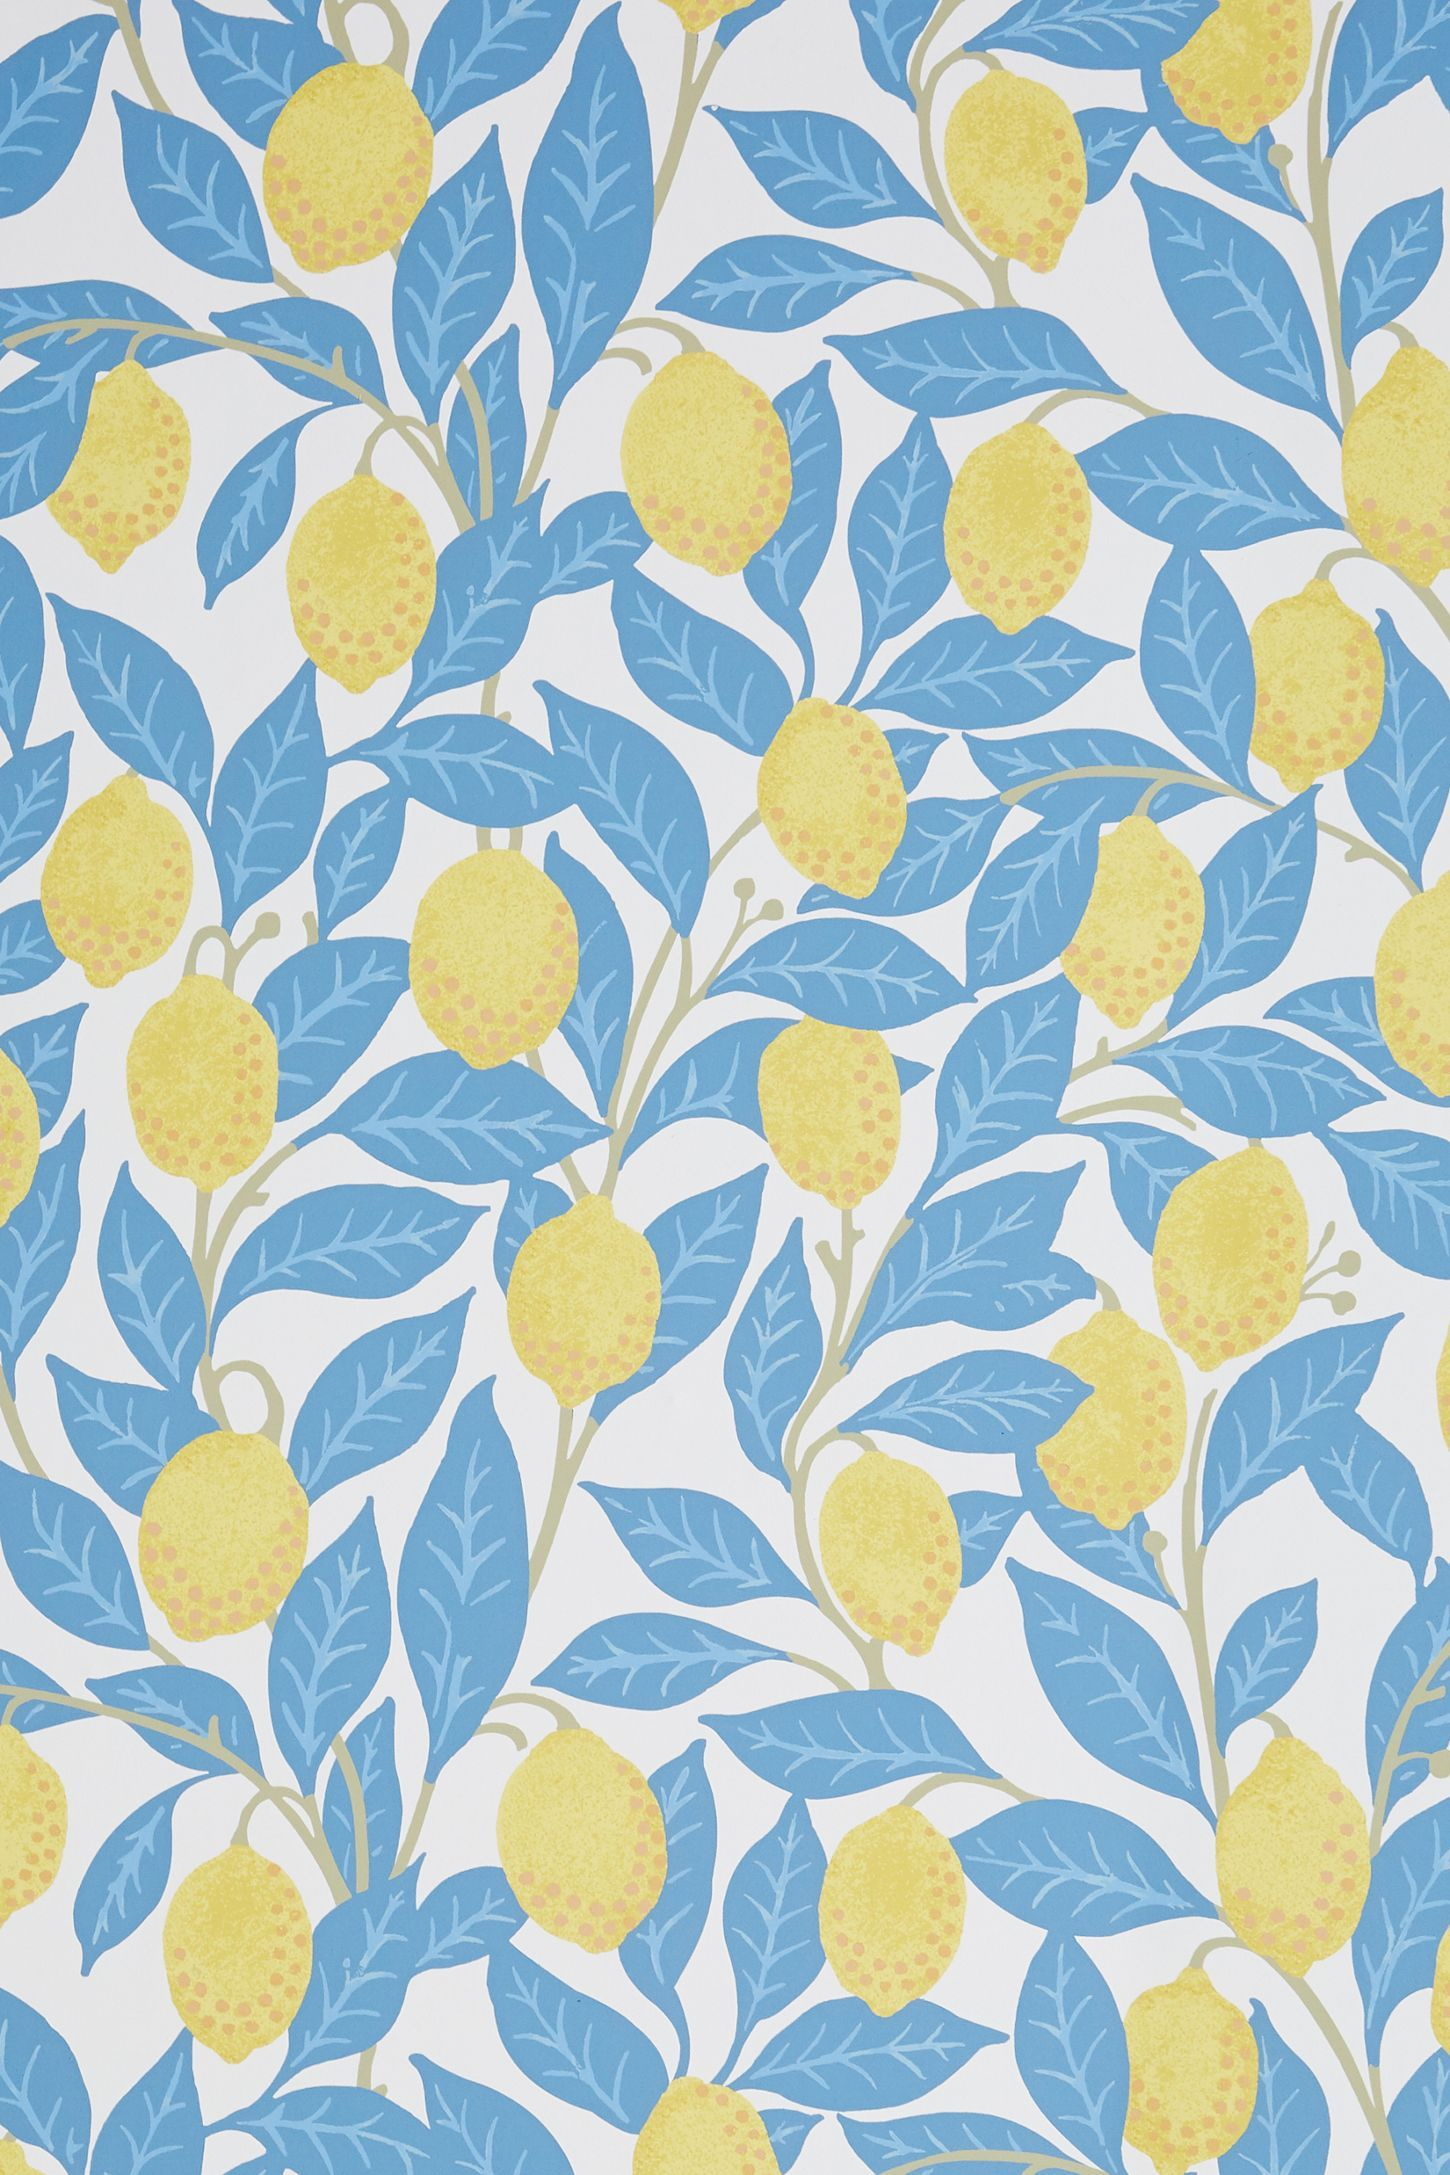 Lemons Wallpaper Wallpaper Anthropologie Wallpaper Accent Wallpaper